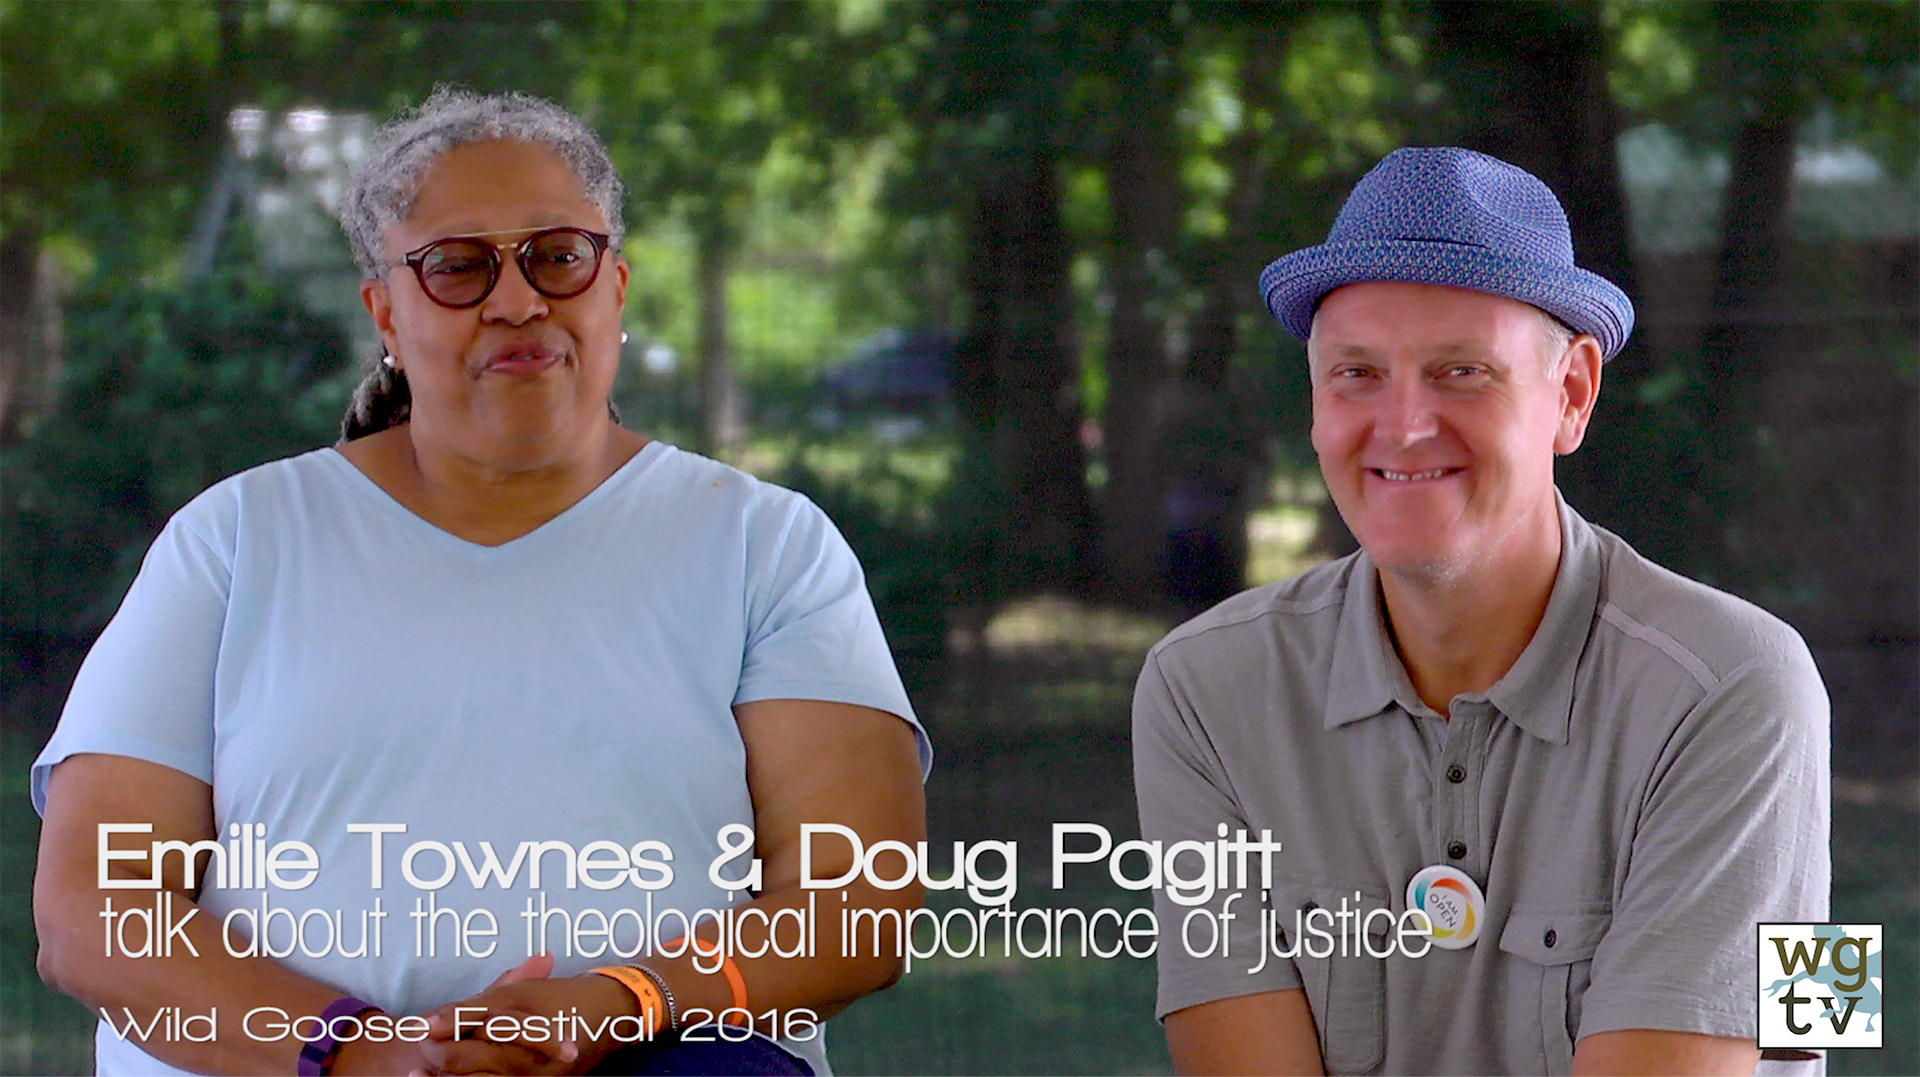 Emilie Townes and Doug Pagitt